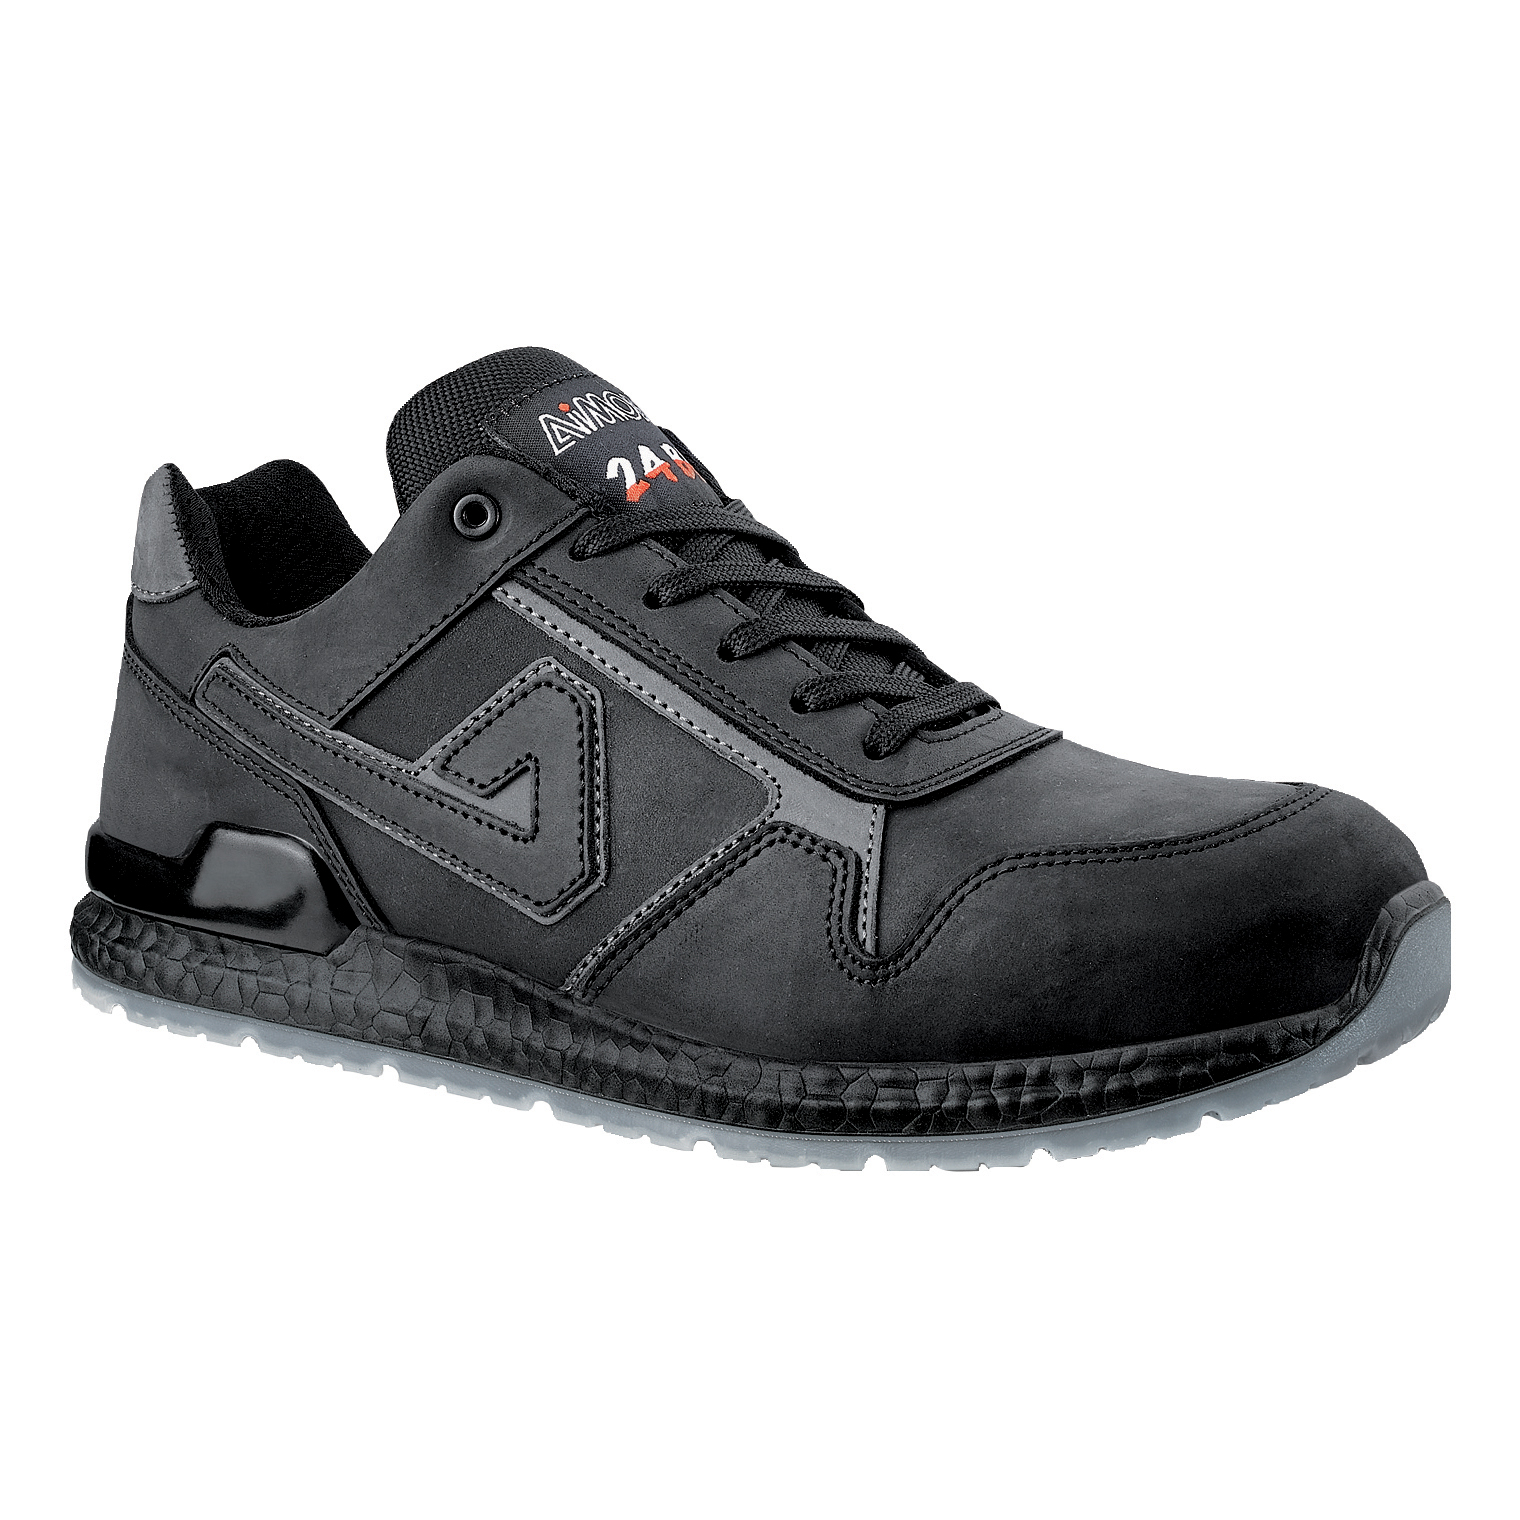 416b53f9bdf Facilities management - Personal Protection Equipment - Safety Footwear